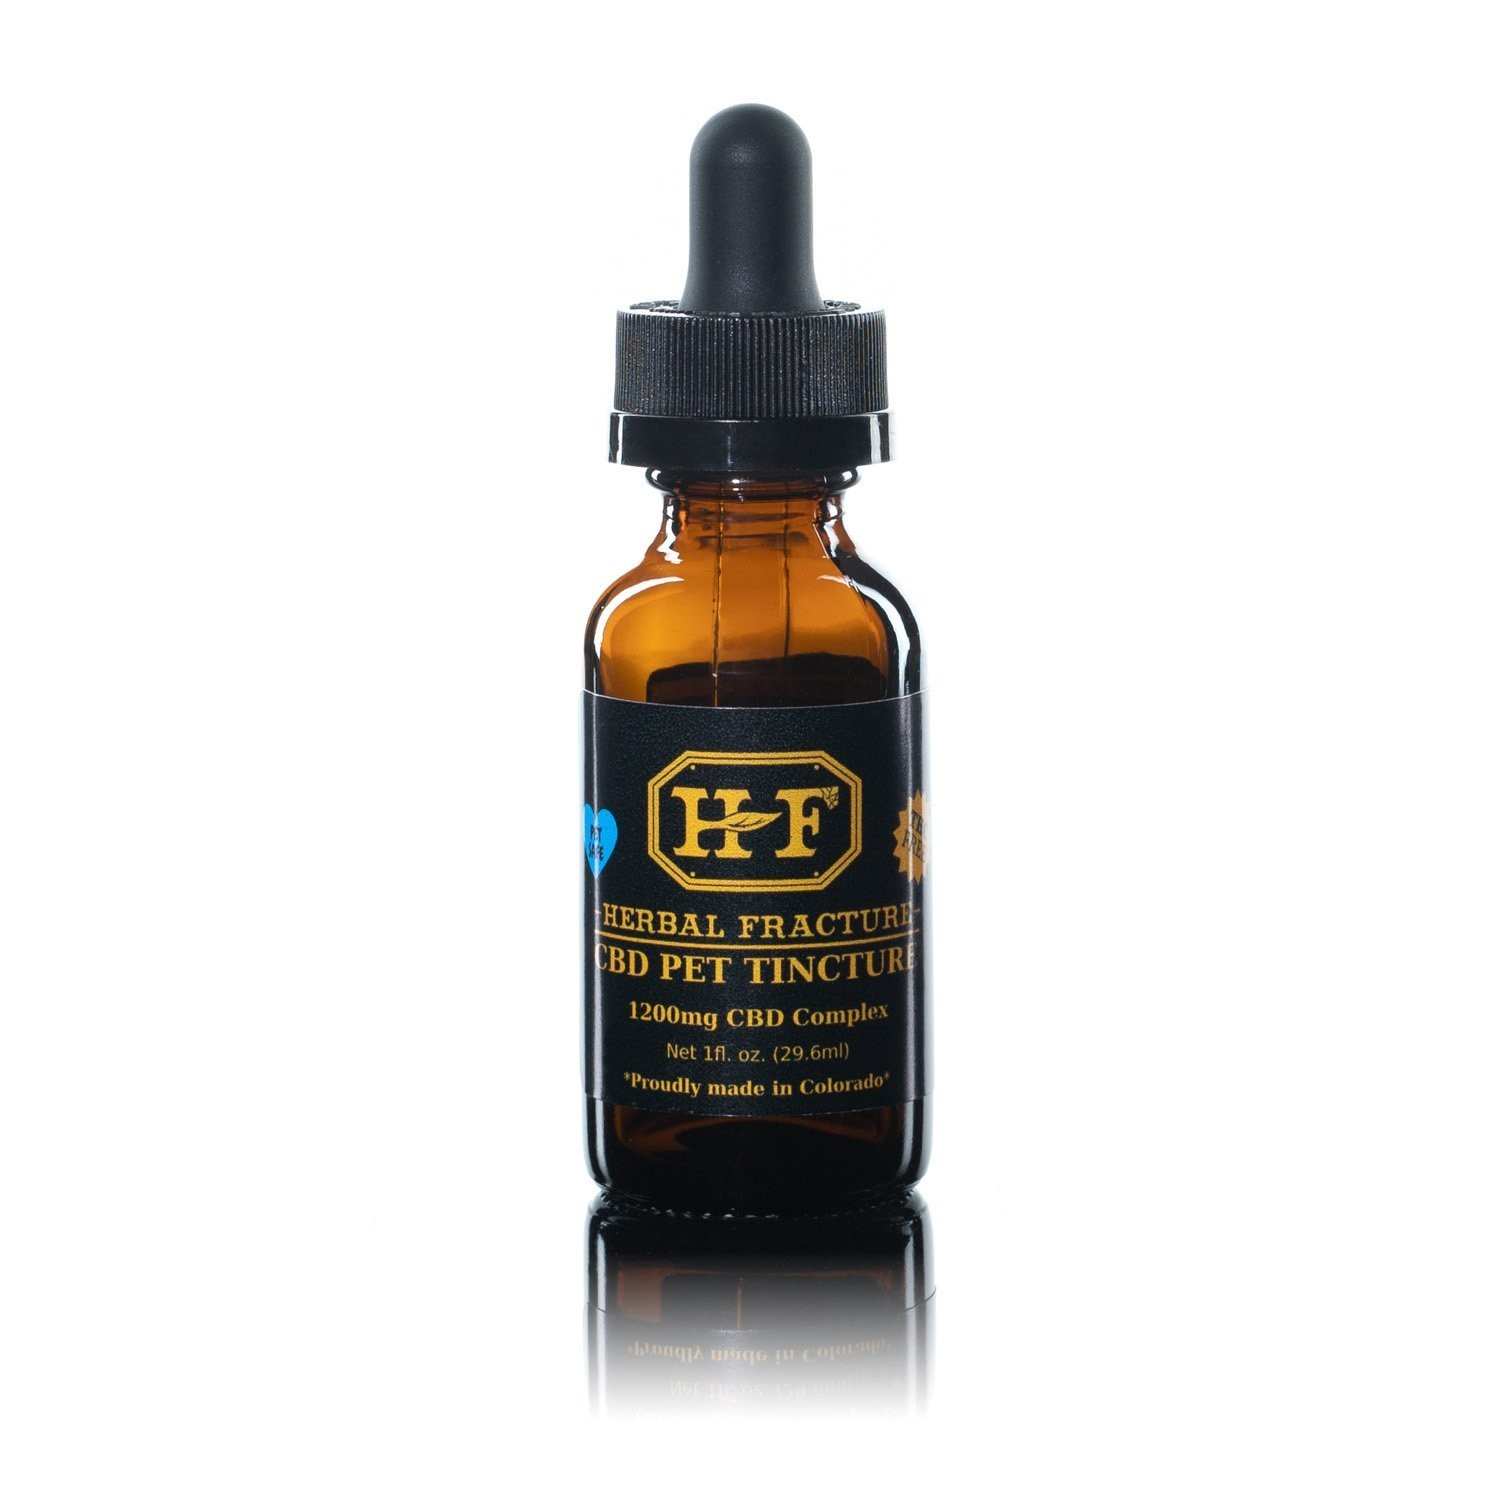 Pet Tincture (Cod Oil/Flavorless) Isolate 2400 mg